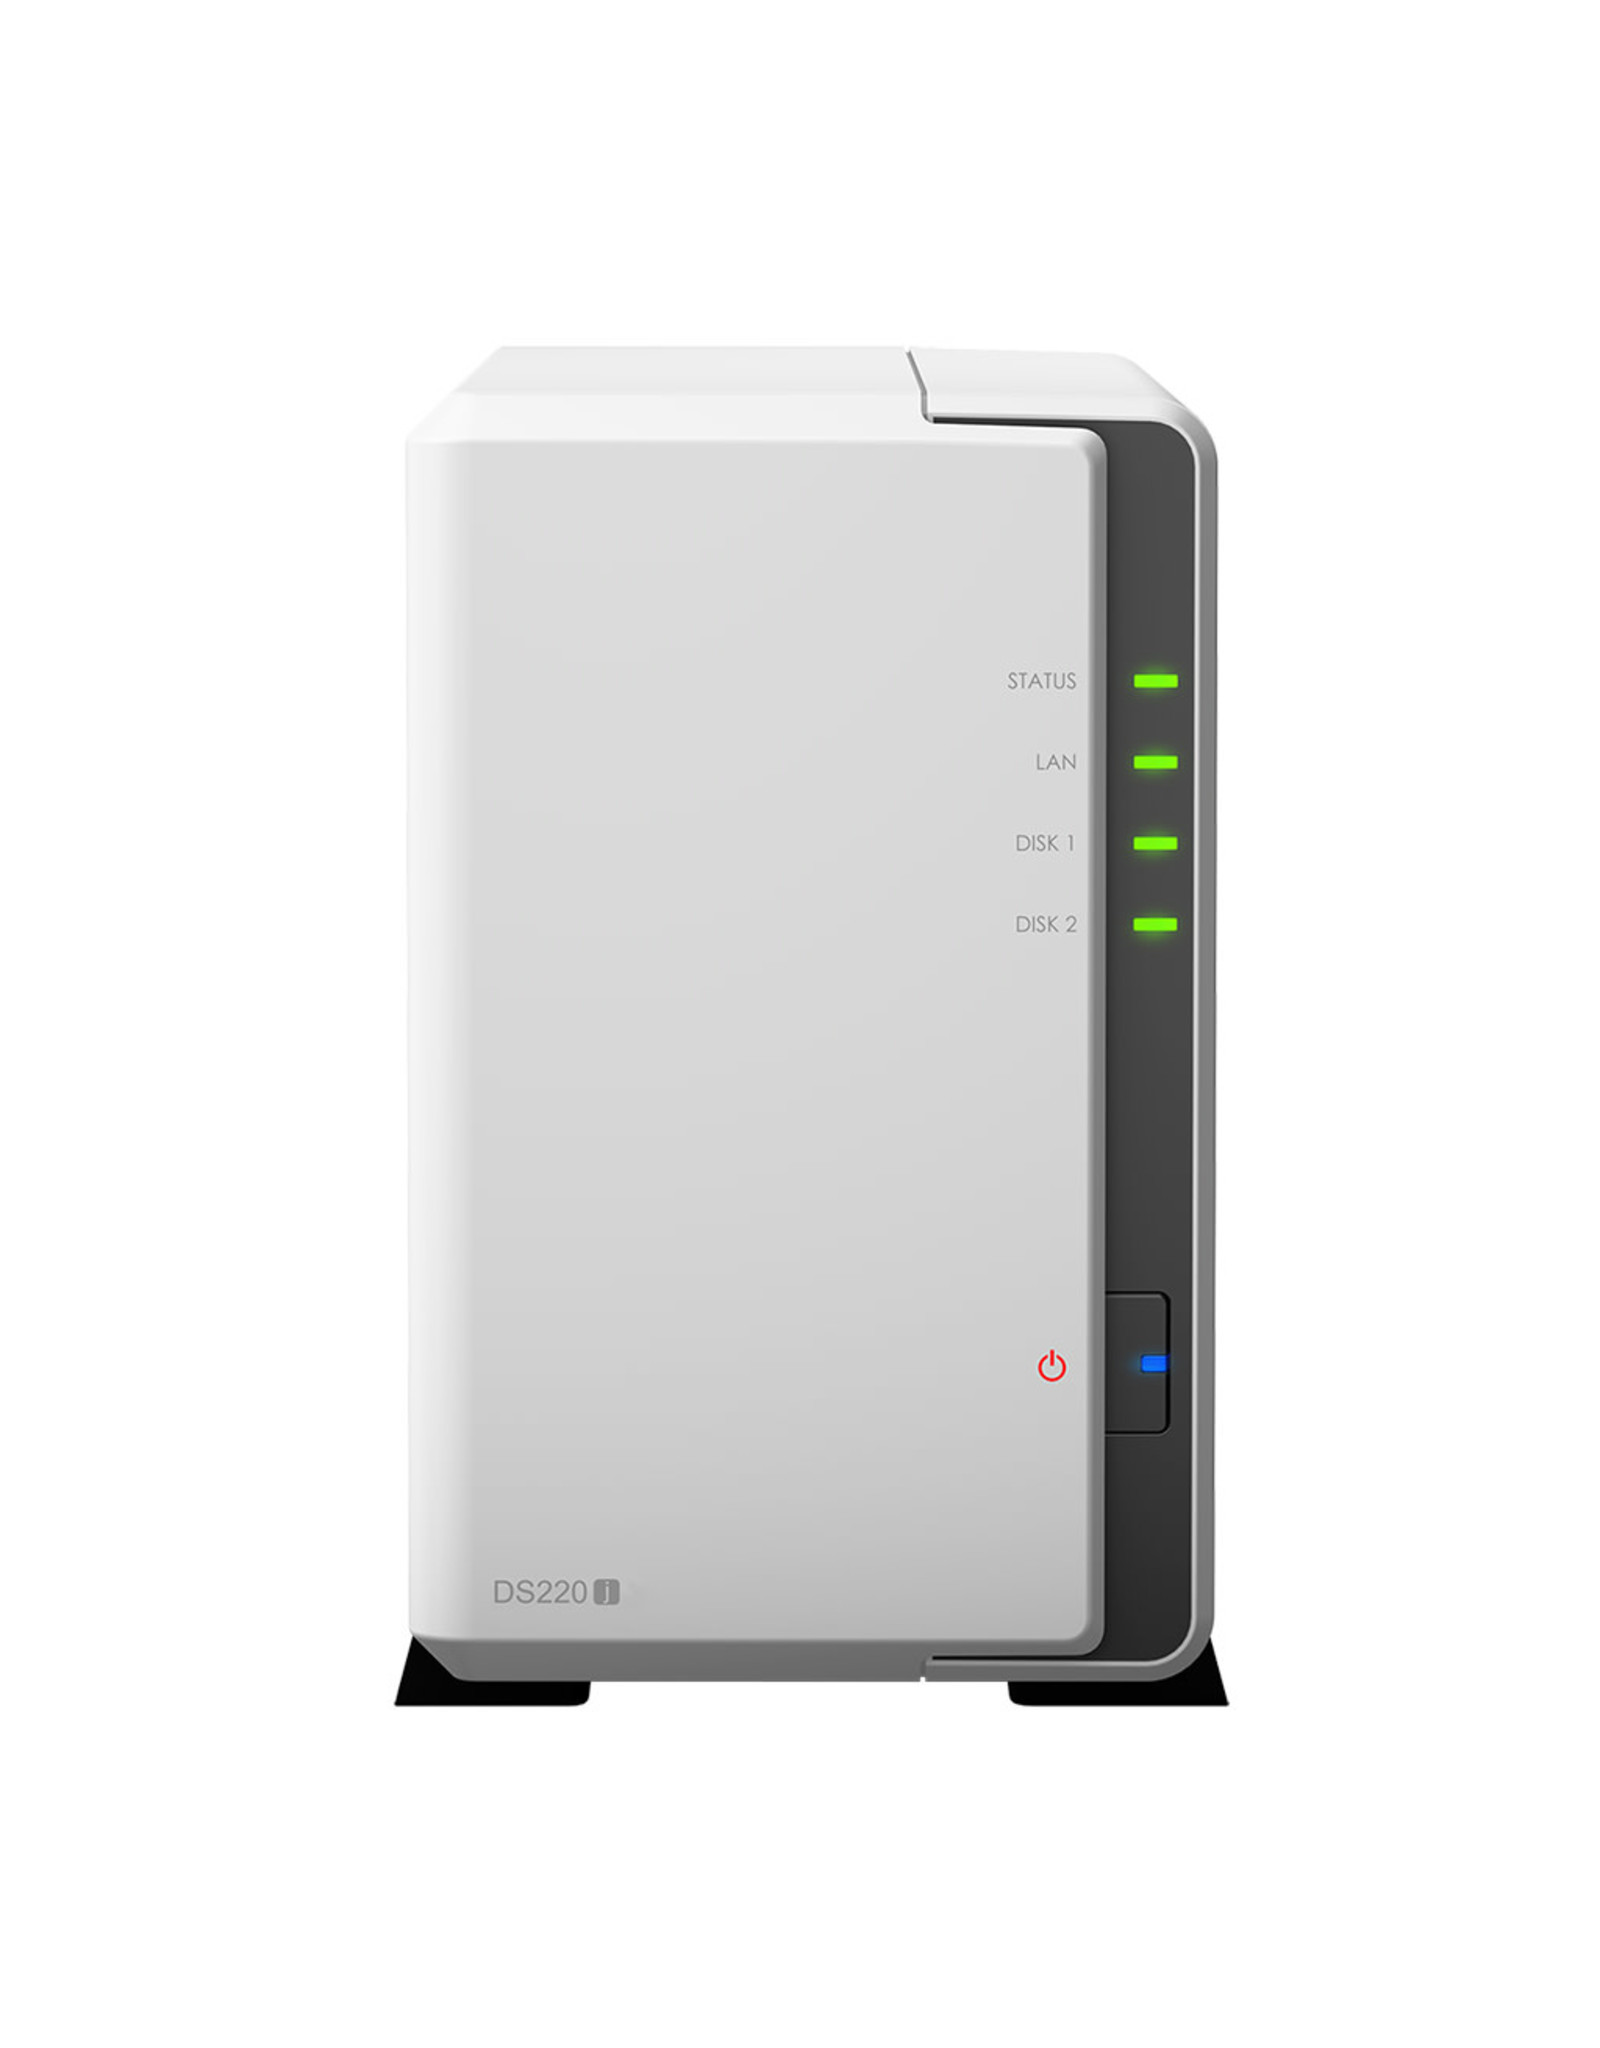 Synology Synology DS220J 2-Bay Quad-core 1.4GHz Budget NAS Server